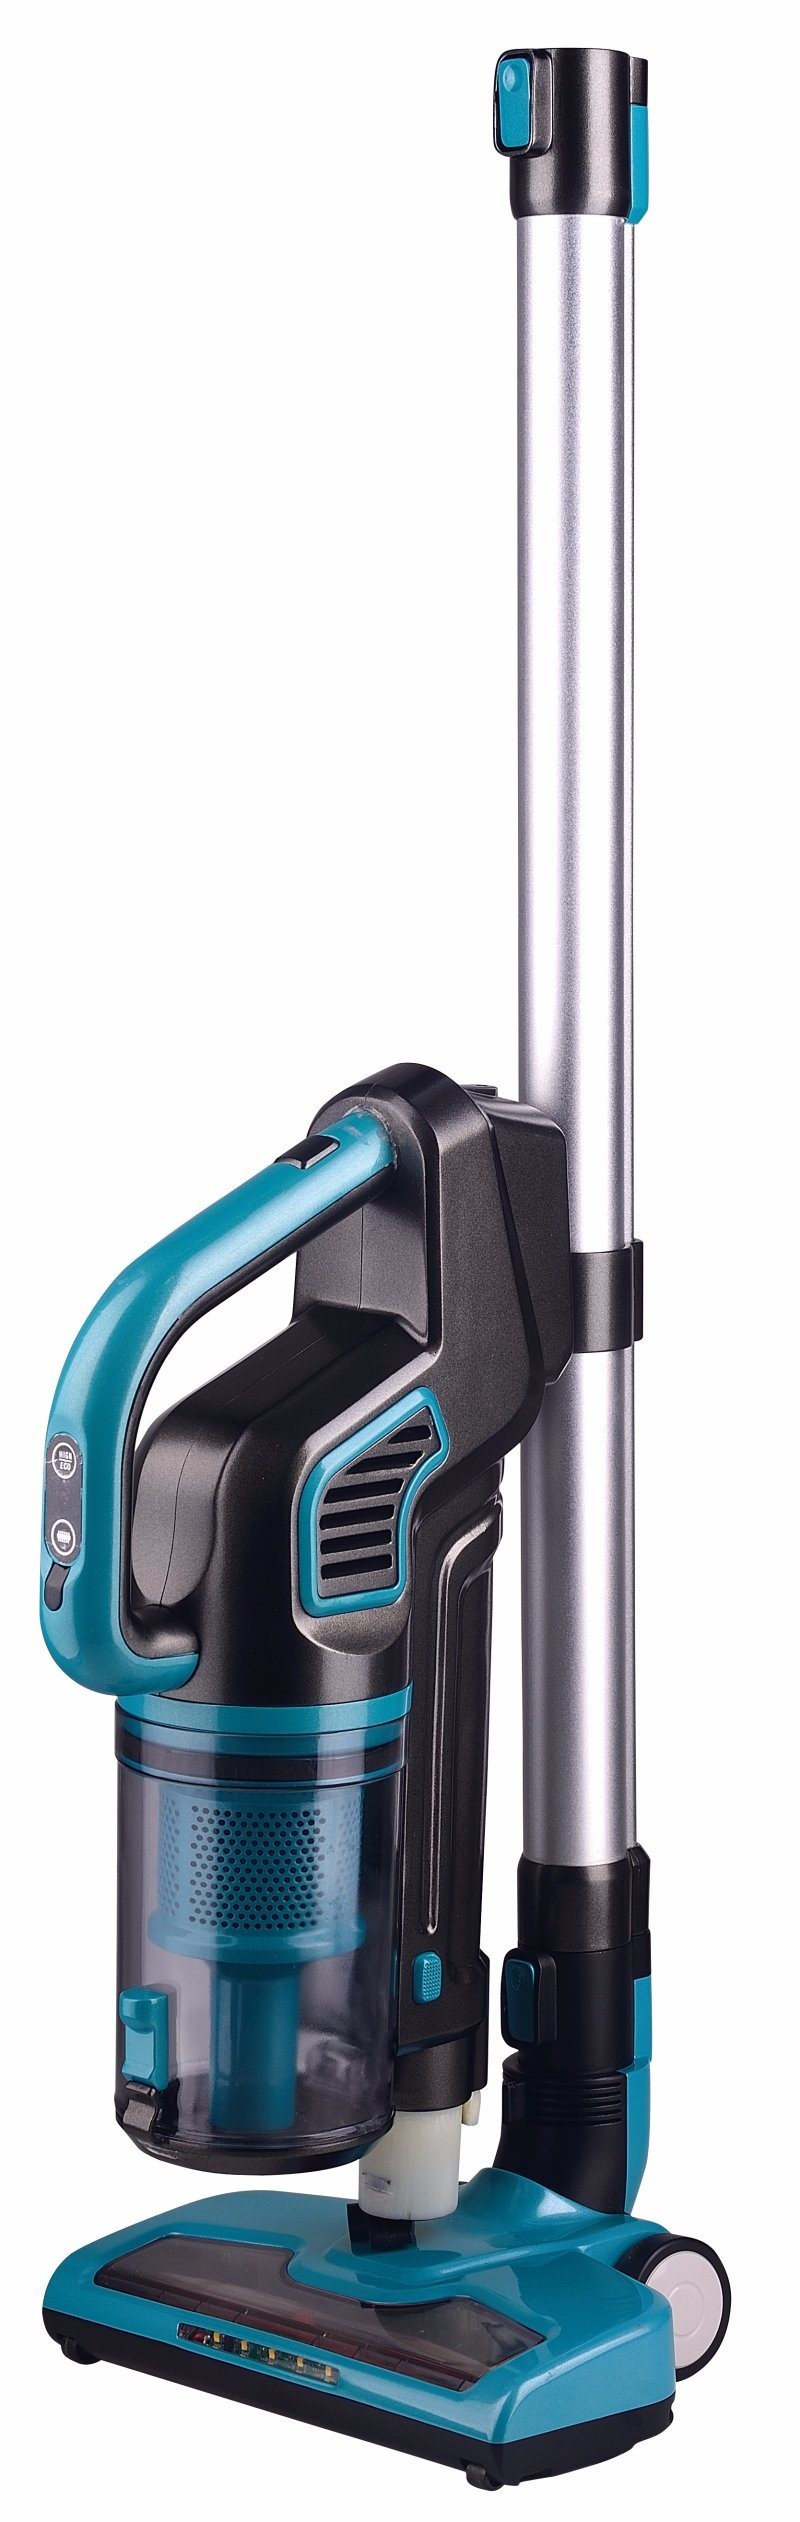 New Handy Vacuum Cleaner for Home Clean